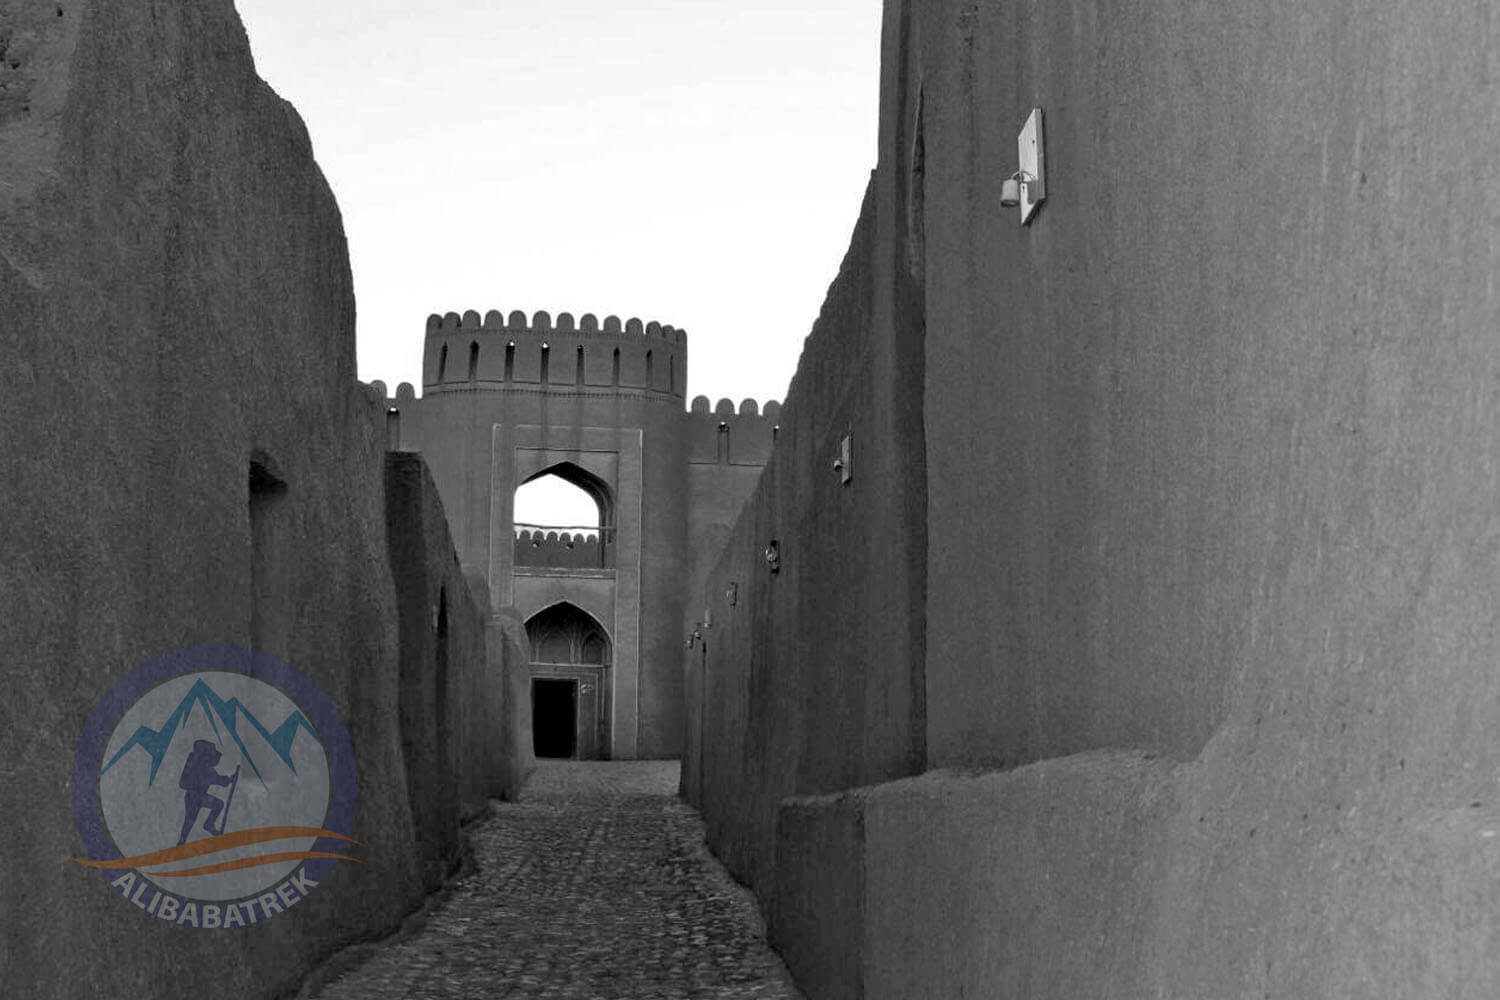 Alibabatrek iran tour packages Tour in iran Persia tour Iran cultural tour Rayen Castle1